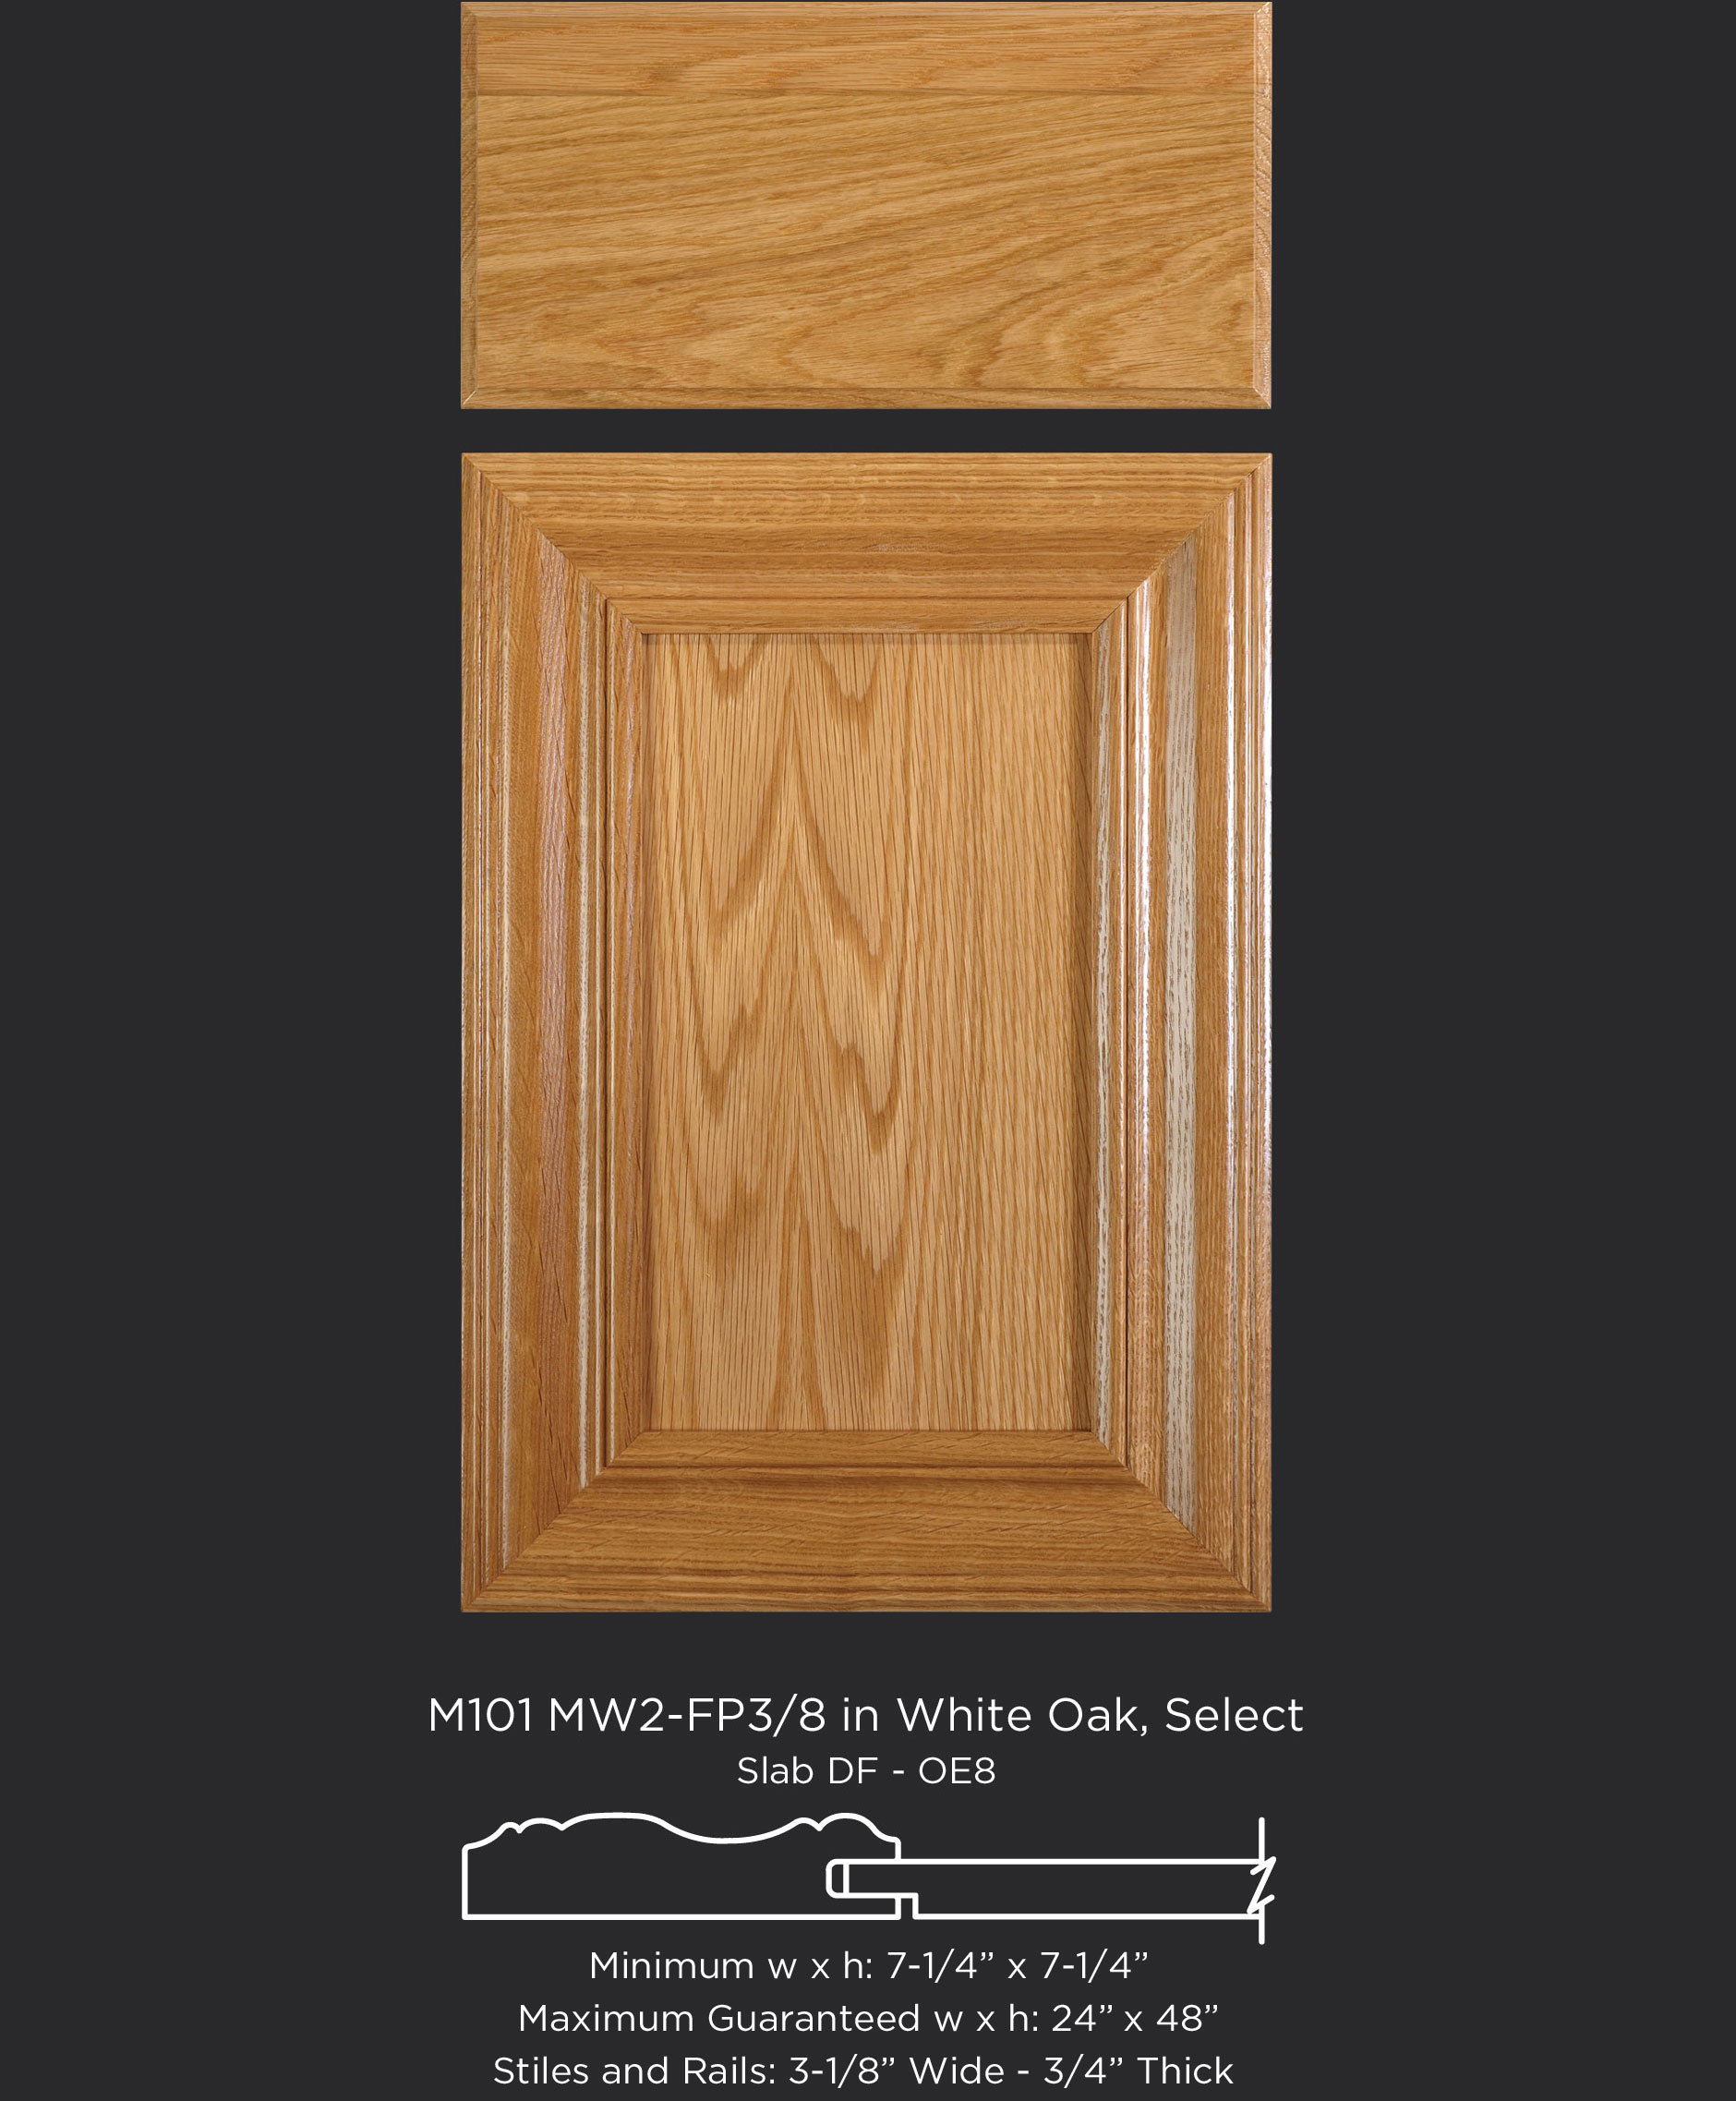 Mitered Cabinet Door M101 MW2-FP3/8 in White Oak, Select and Slab drawer front with OE8